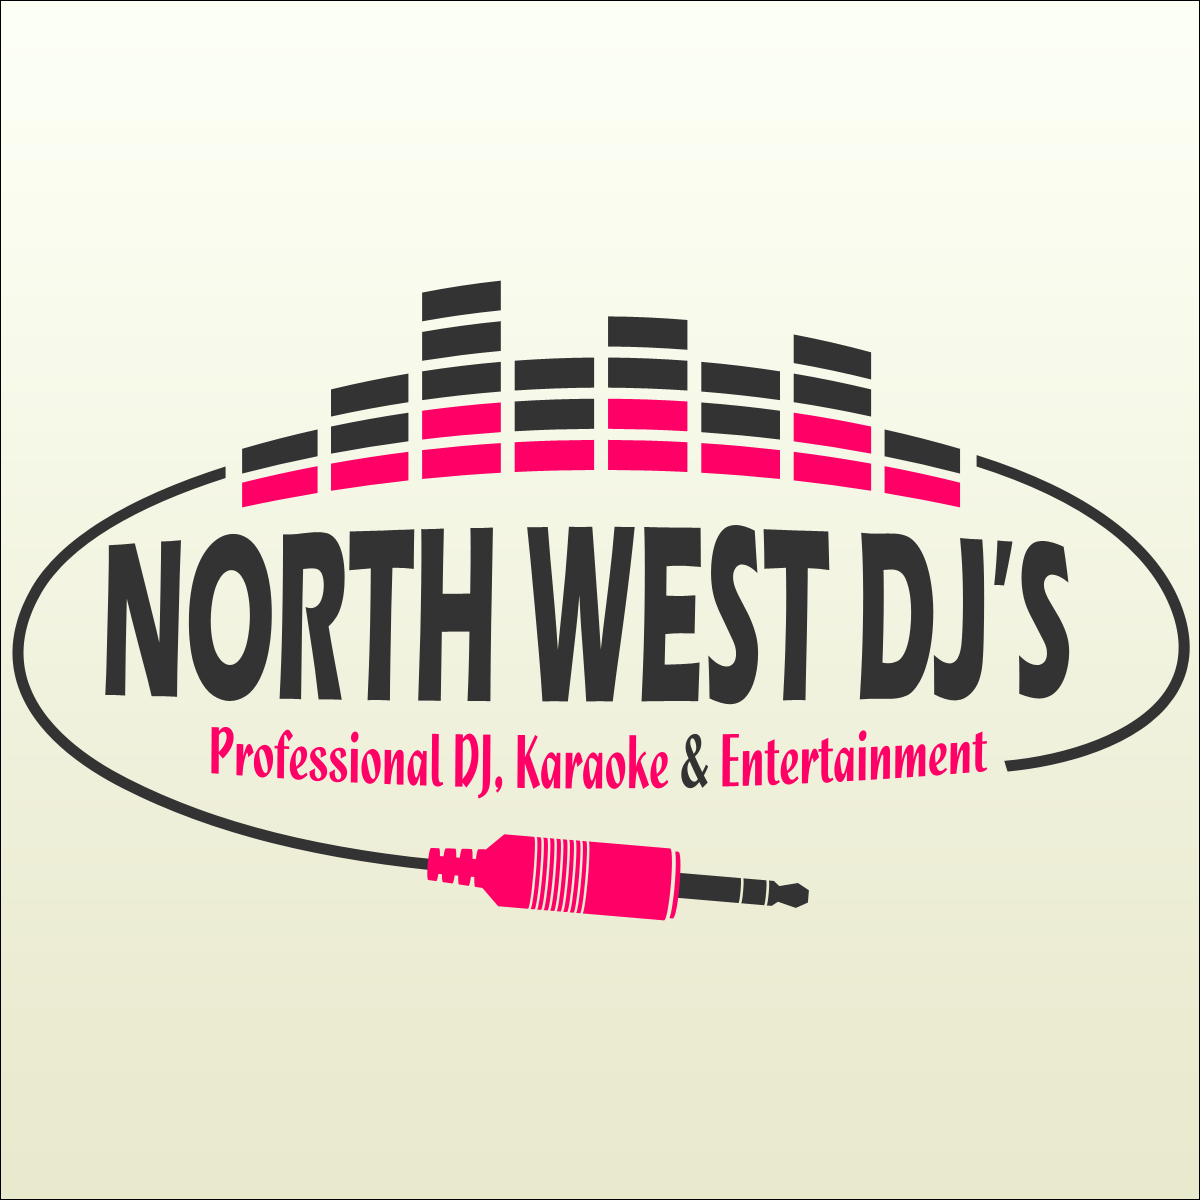 North West DJ's